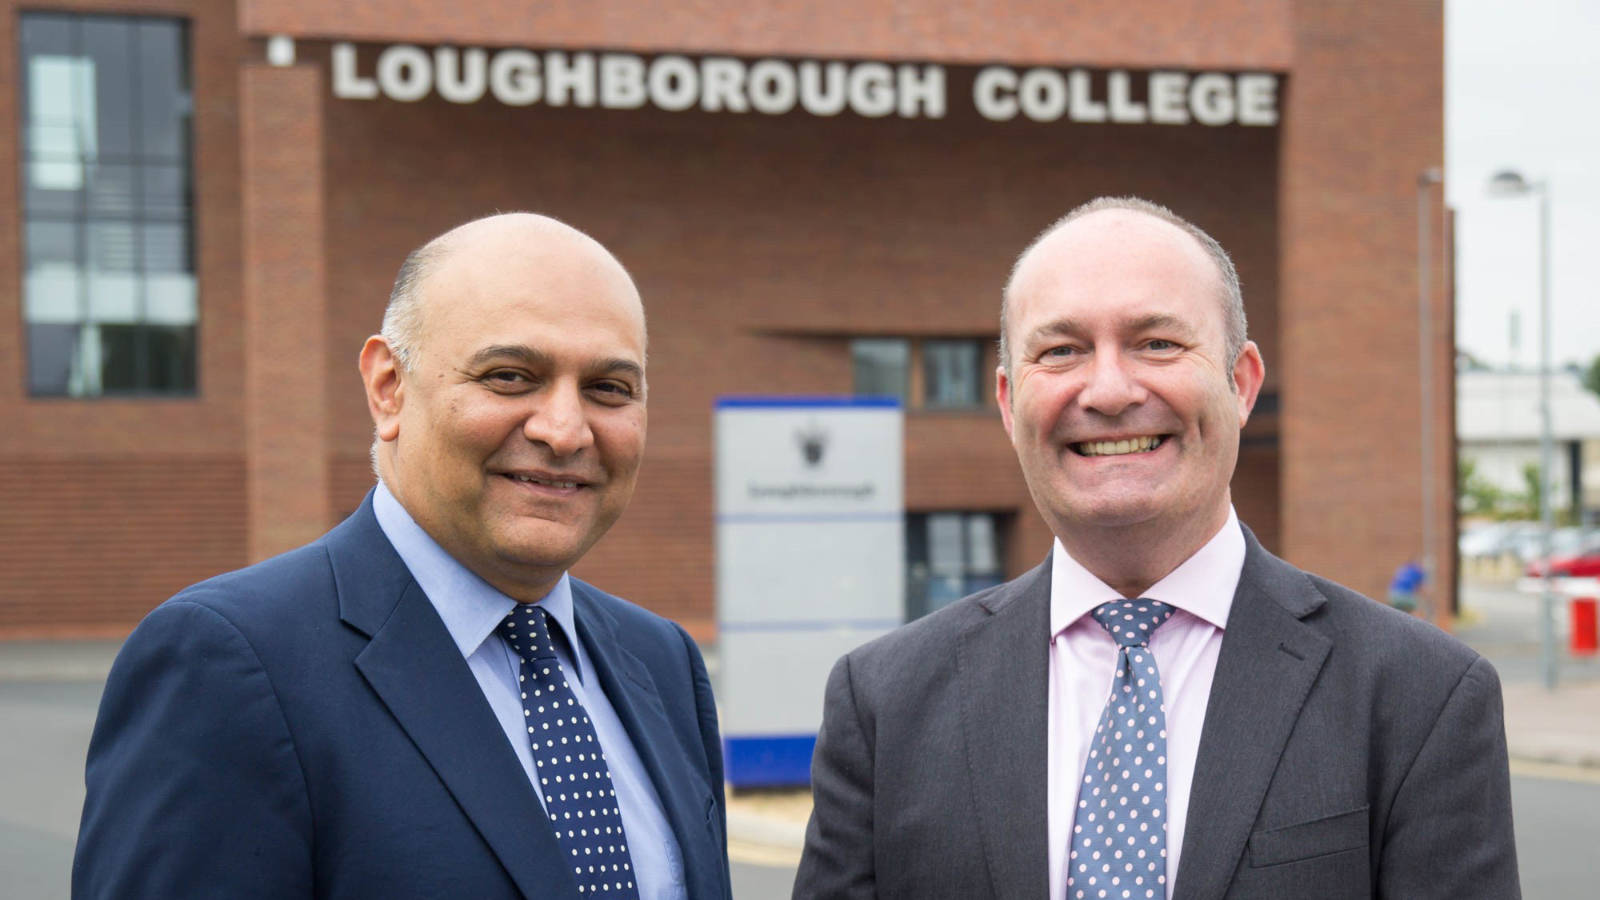 Apprenticeship programme in partnership with Loughborough College.